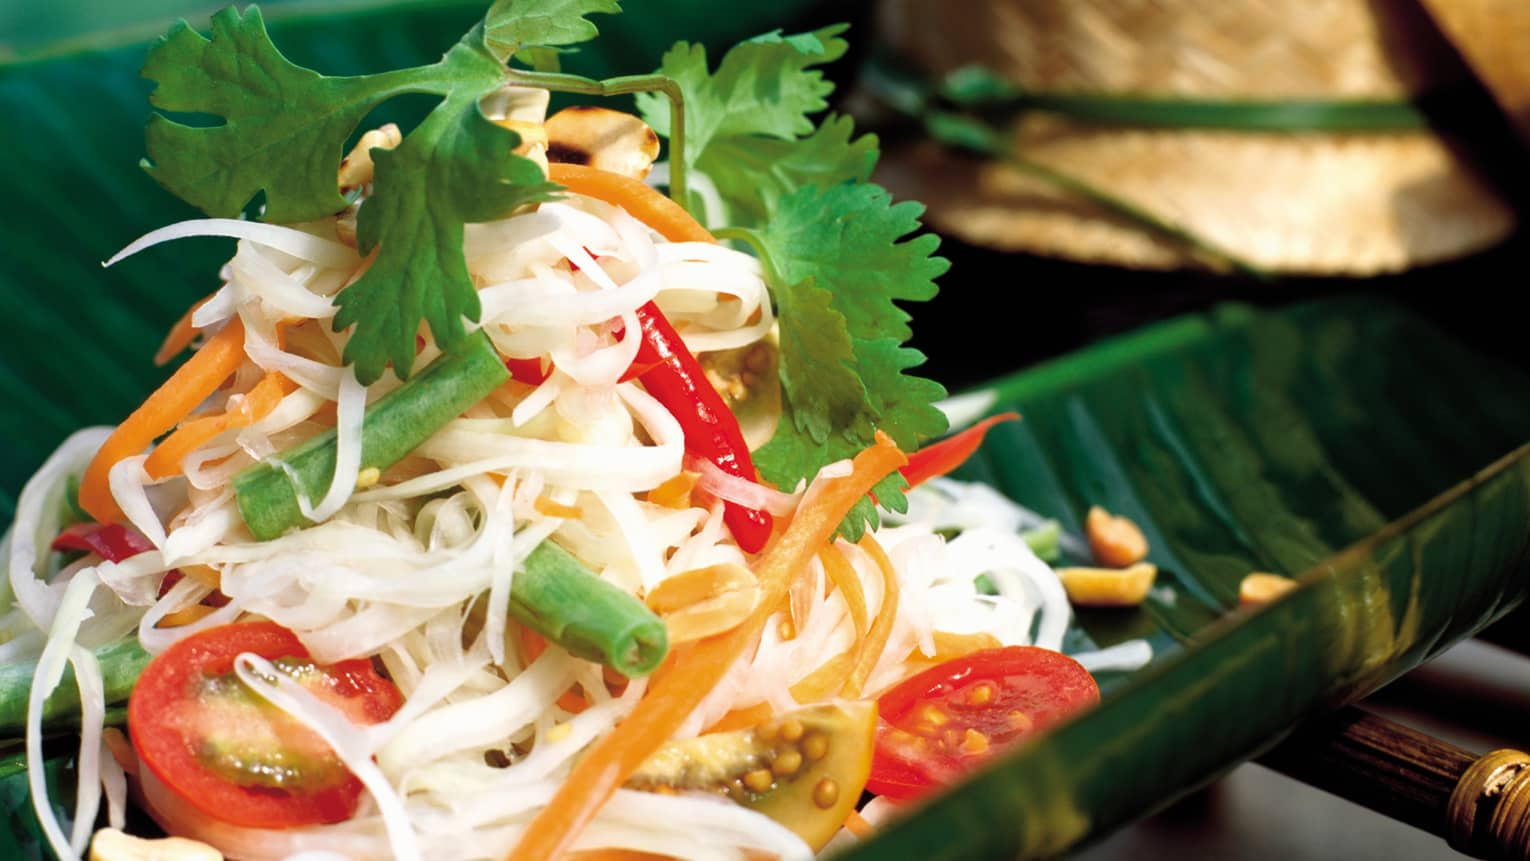 Camp Pad Siew rice noodles mixed with vegetables, fresh coriander leaves